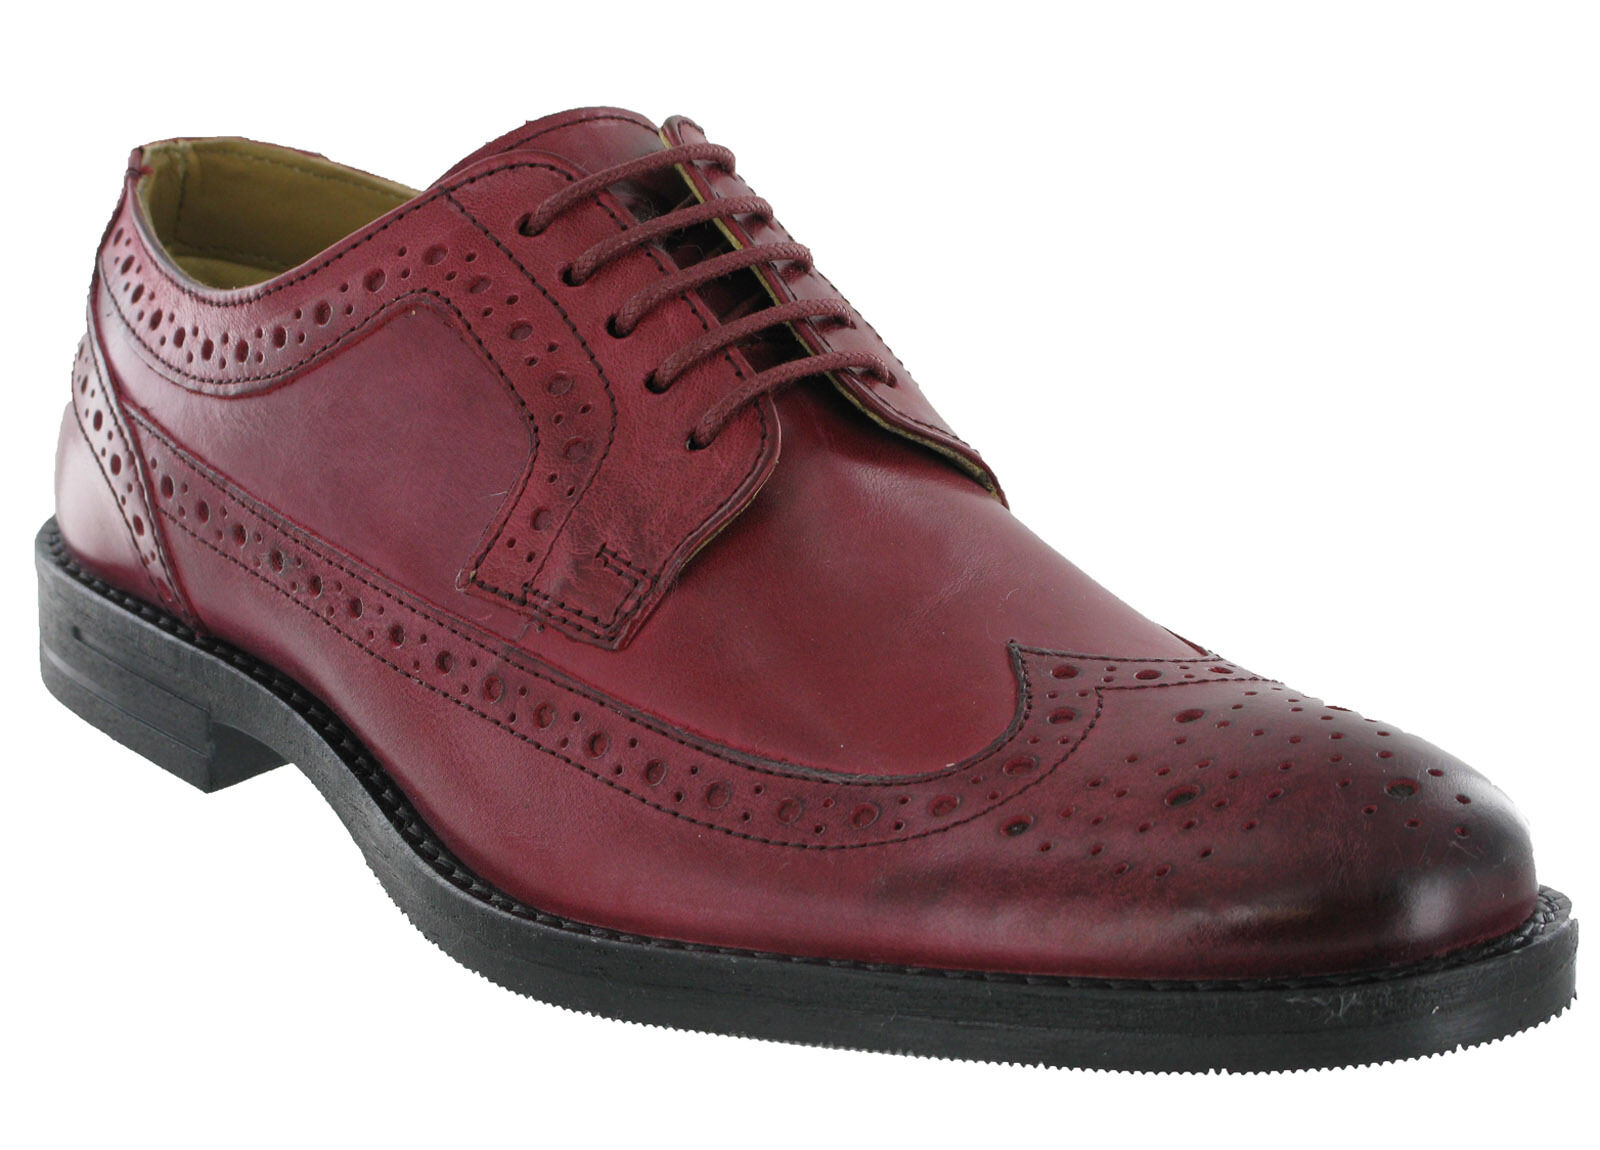 Burgundy Brogue Schuhes Base London Leder Milton 5 Lined Eye  Uomo Formal Lined 5 Lace e20208